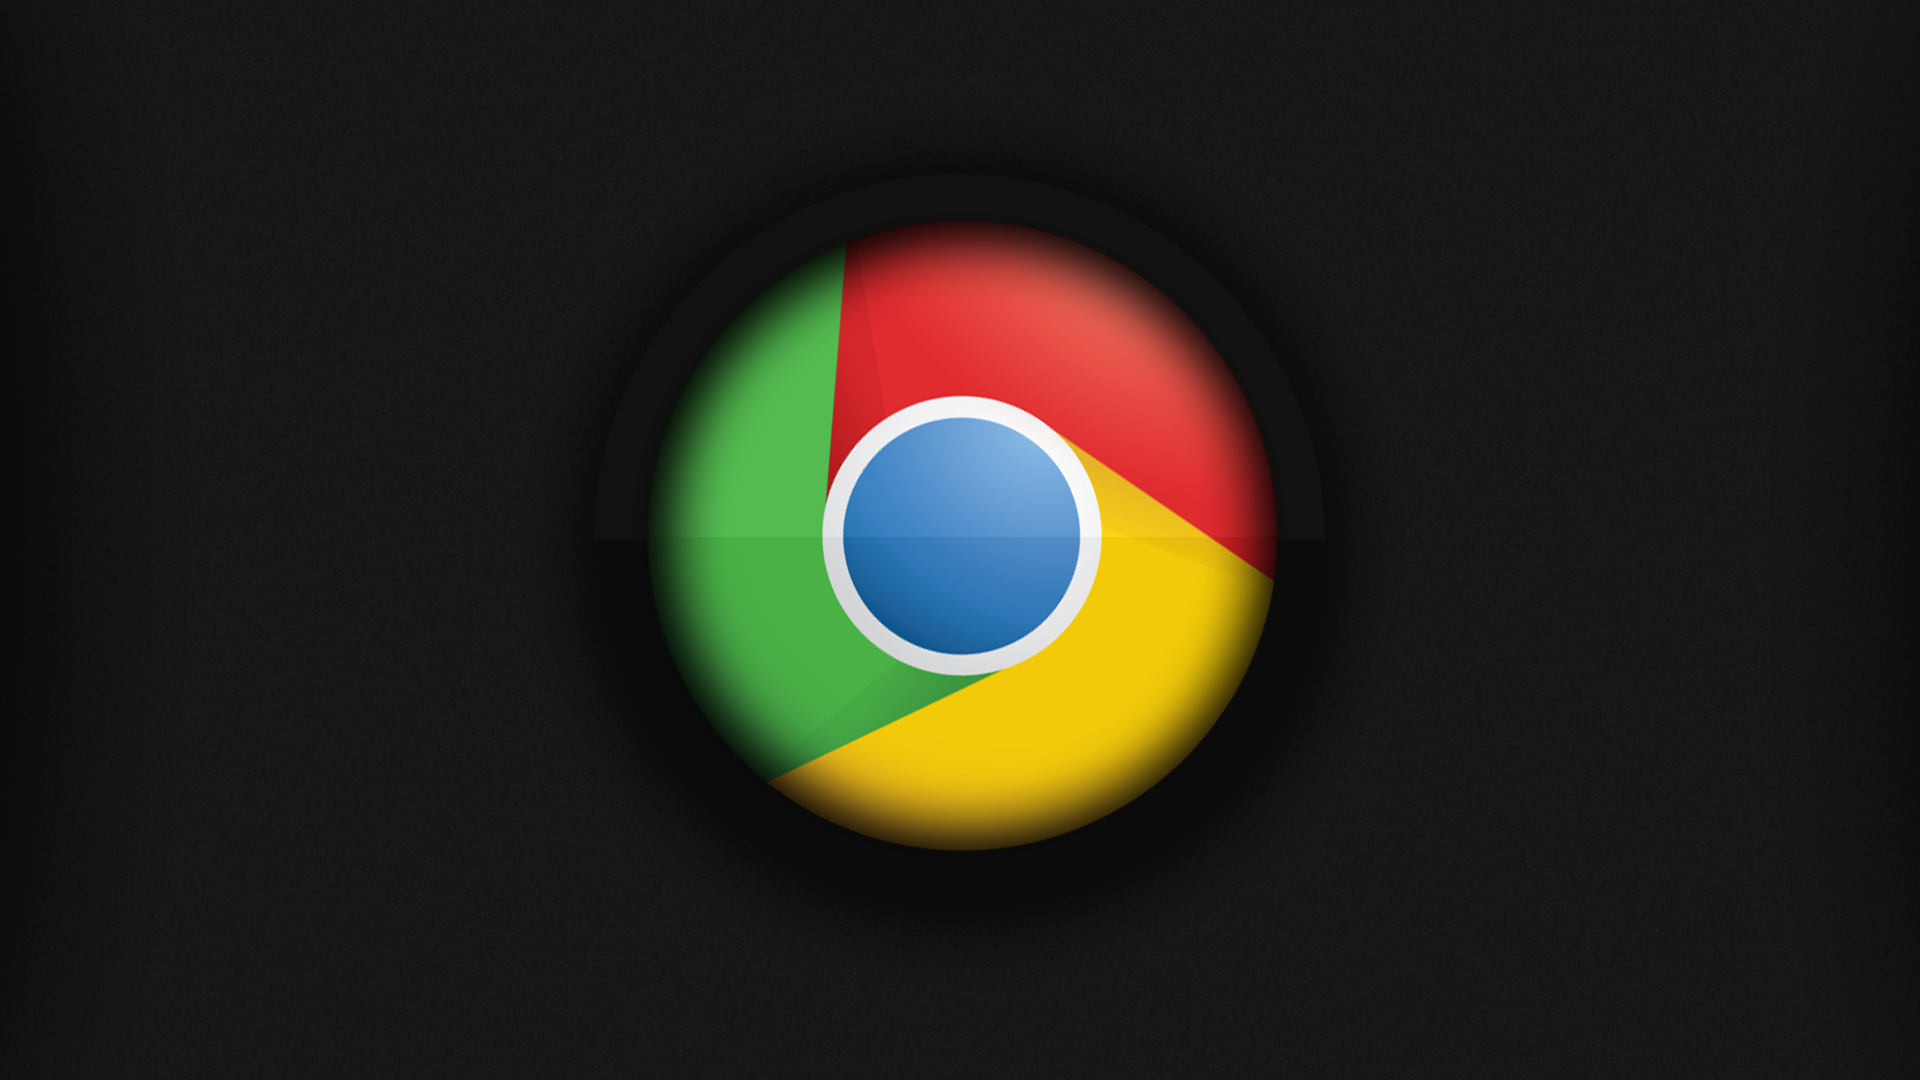 Desktop Backgrounds: Chrome, by Lavonne Burnes, 1920x1080